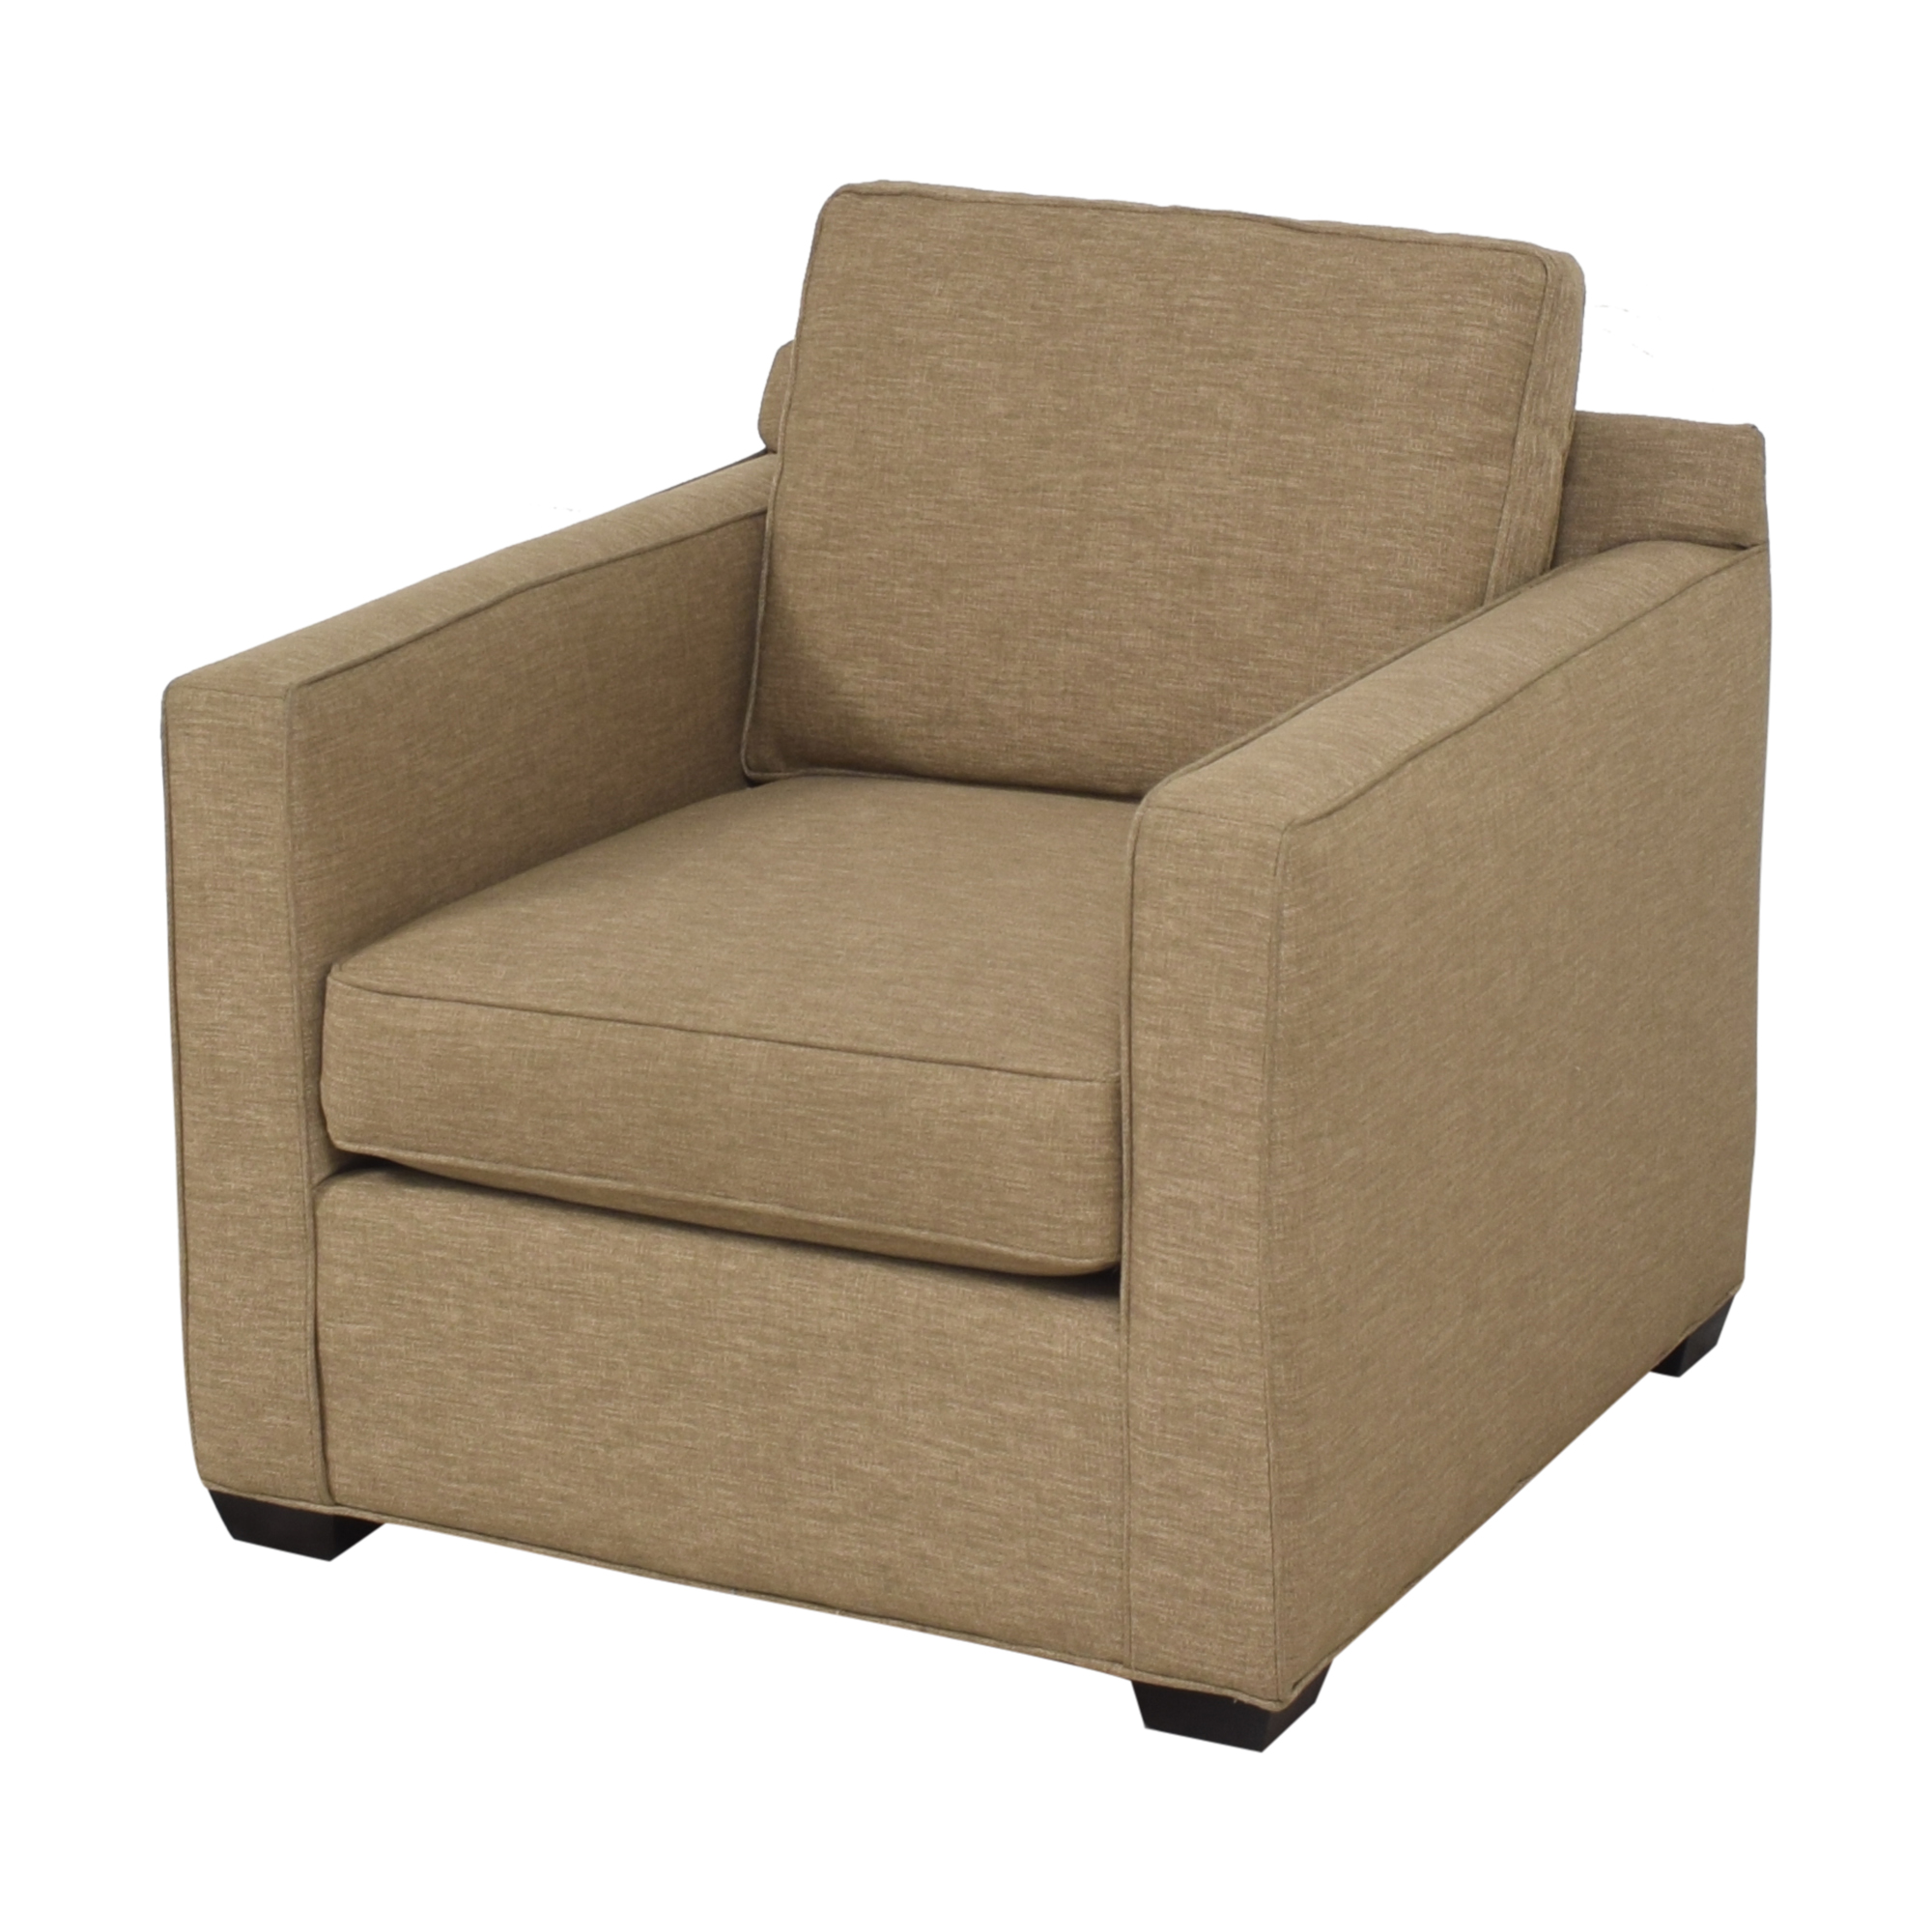 Crate & Barrel Crate & Barrel Barrett Track Arm Chair dimensions